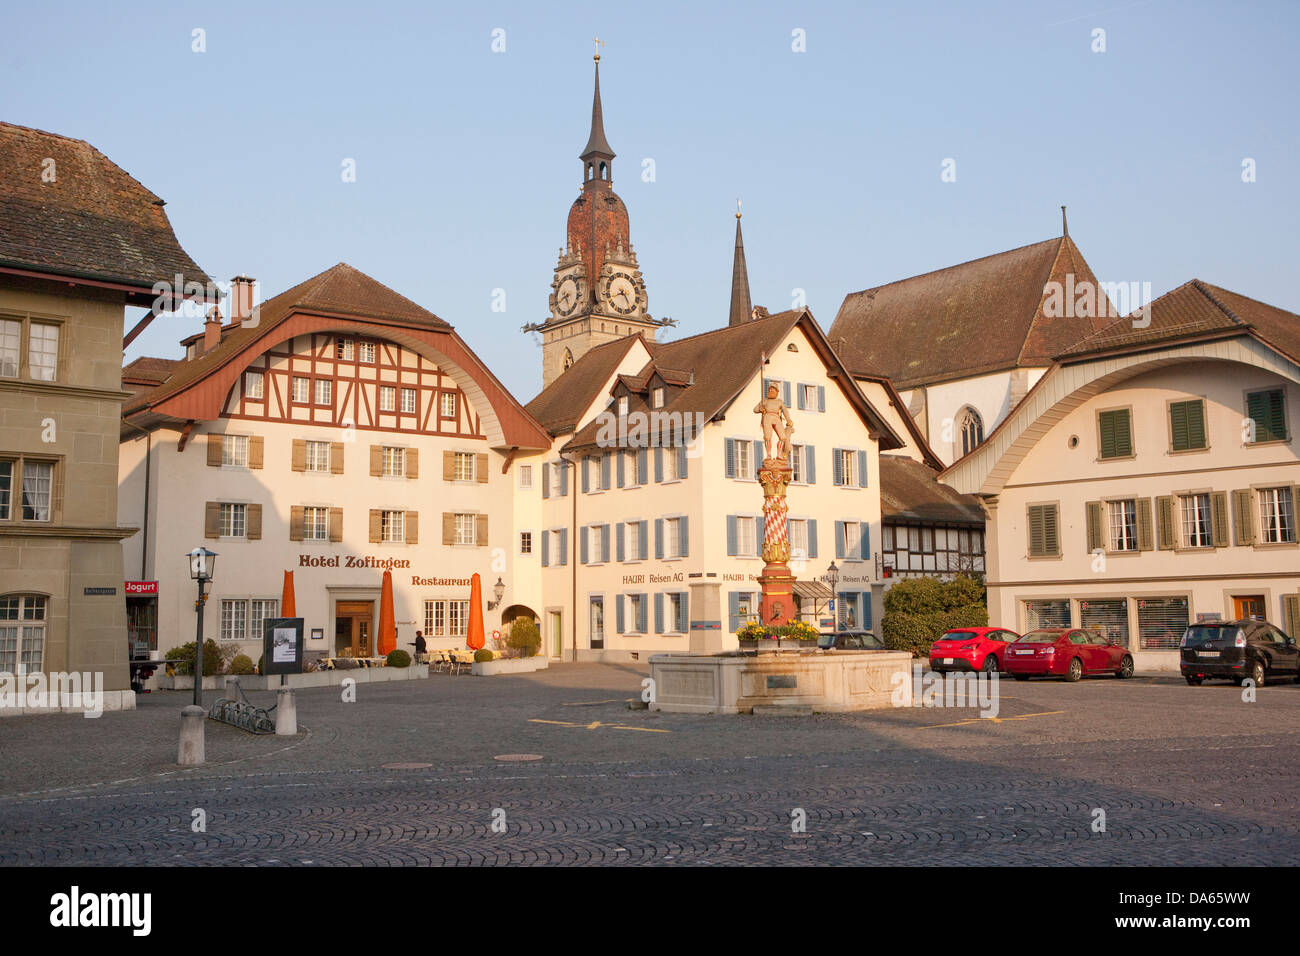 Zofingen, town, city, Kanton, AG, Aargau, Switzerland, Europe, place, well - Stock Image